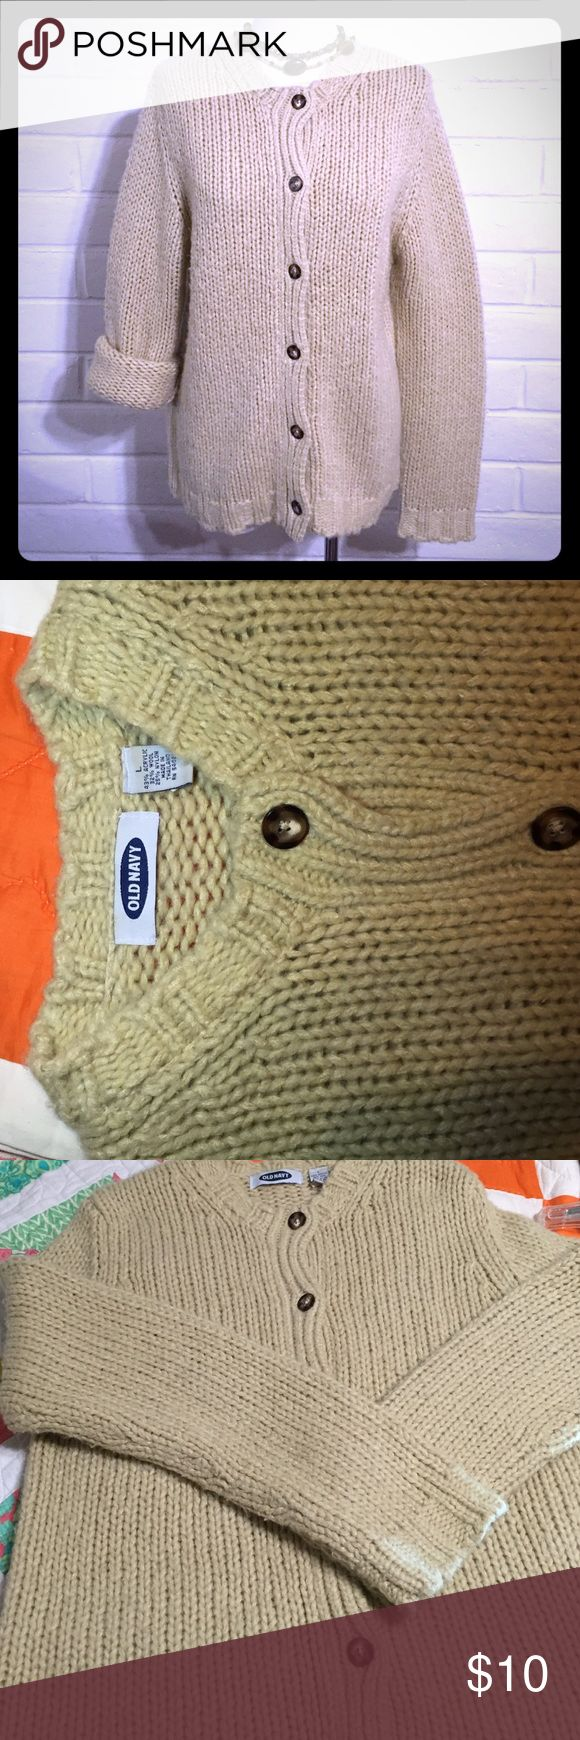 Old Navy Sweater Tan Tan Old Navy Sweater button down. Used but still would look great with a white t-shirt and jeans. Old Navy Sweaters Cardigans